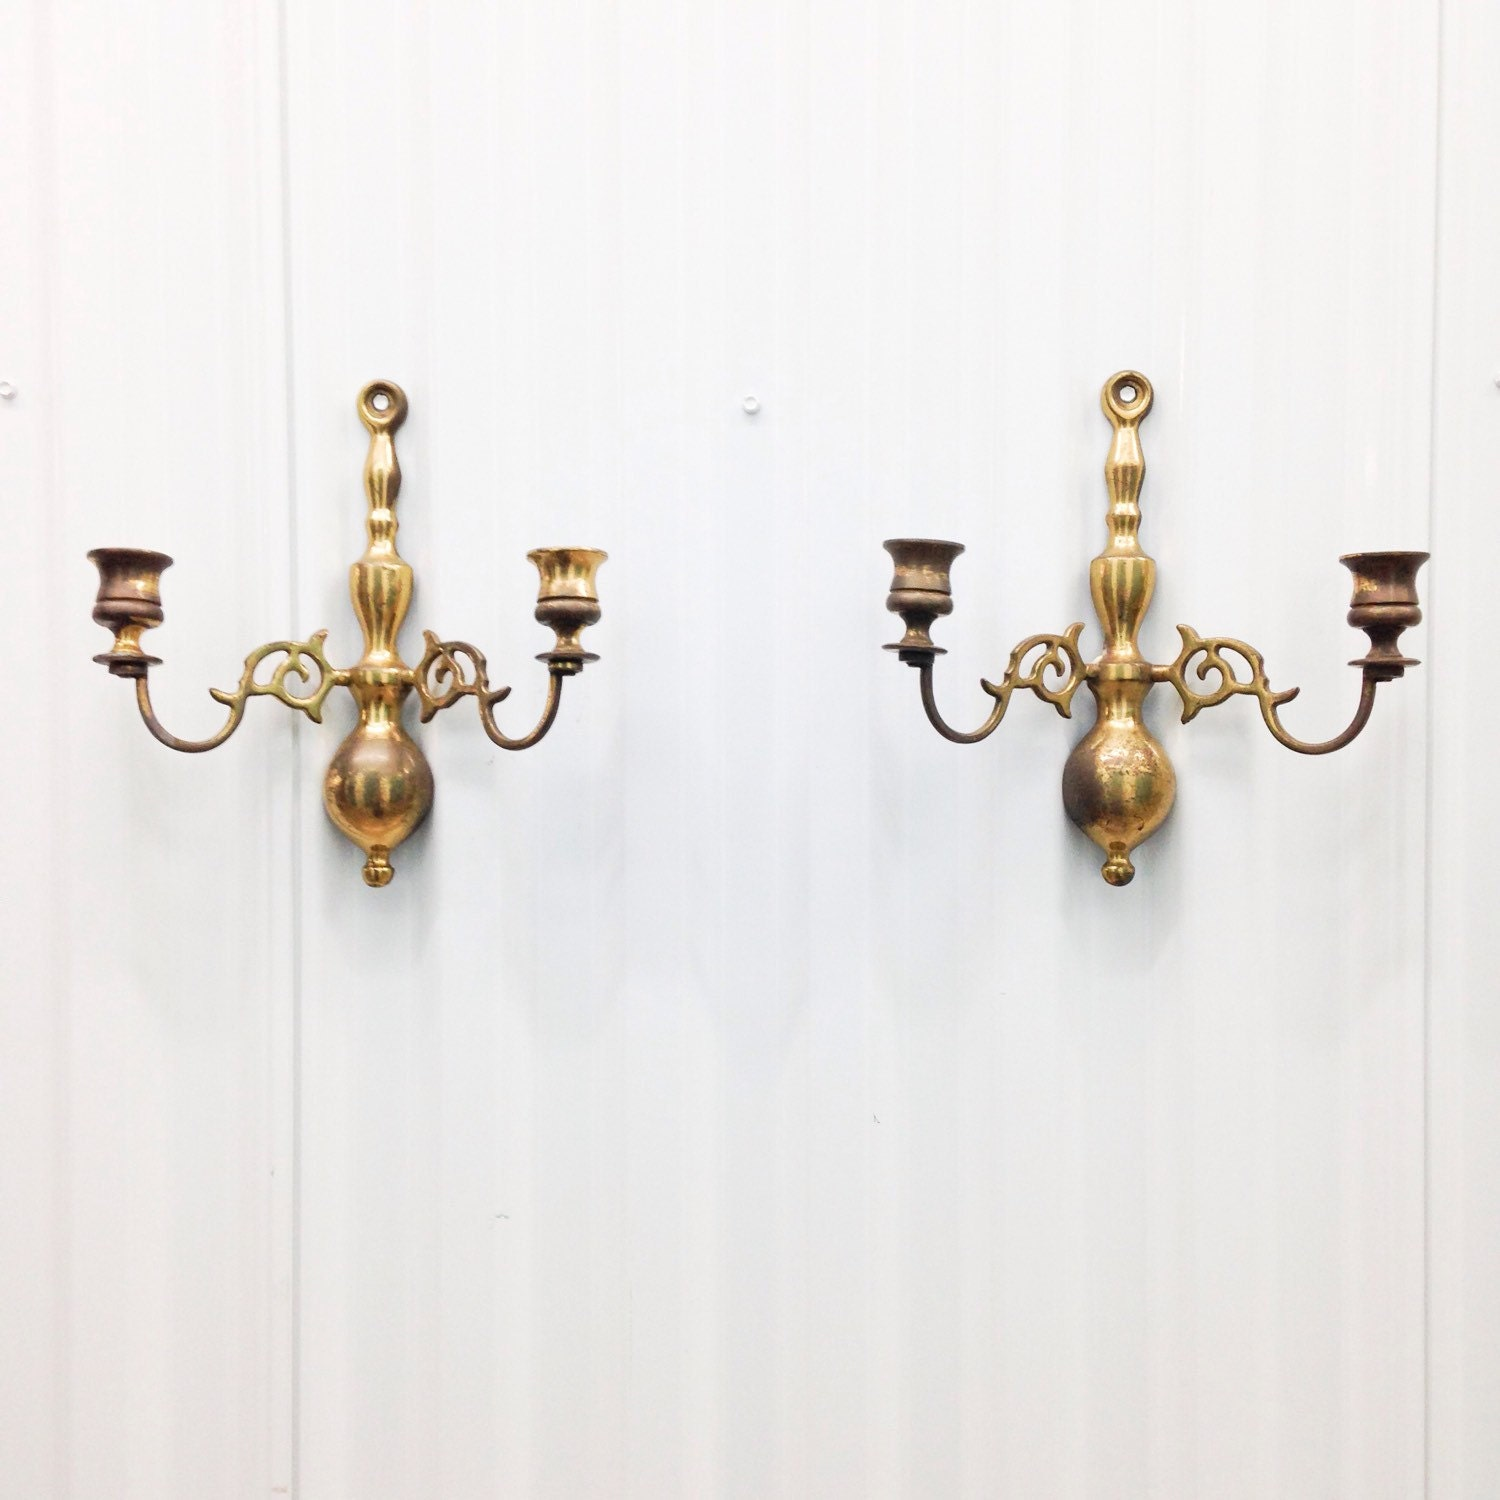 Pair of Brass Wall Hanging Candle Holders / Sconces Made in